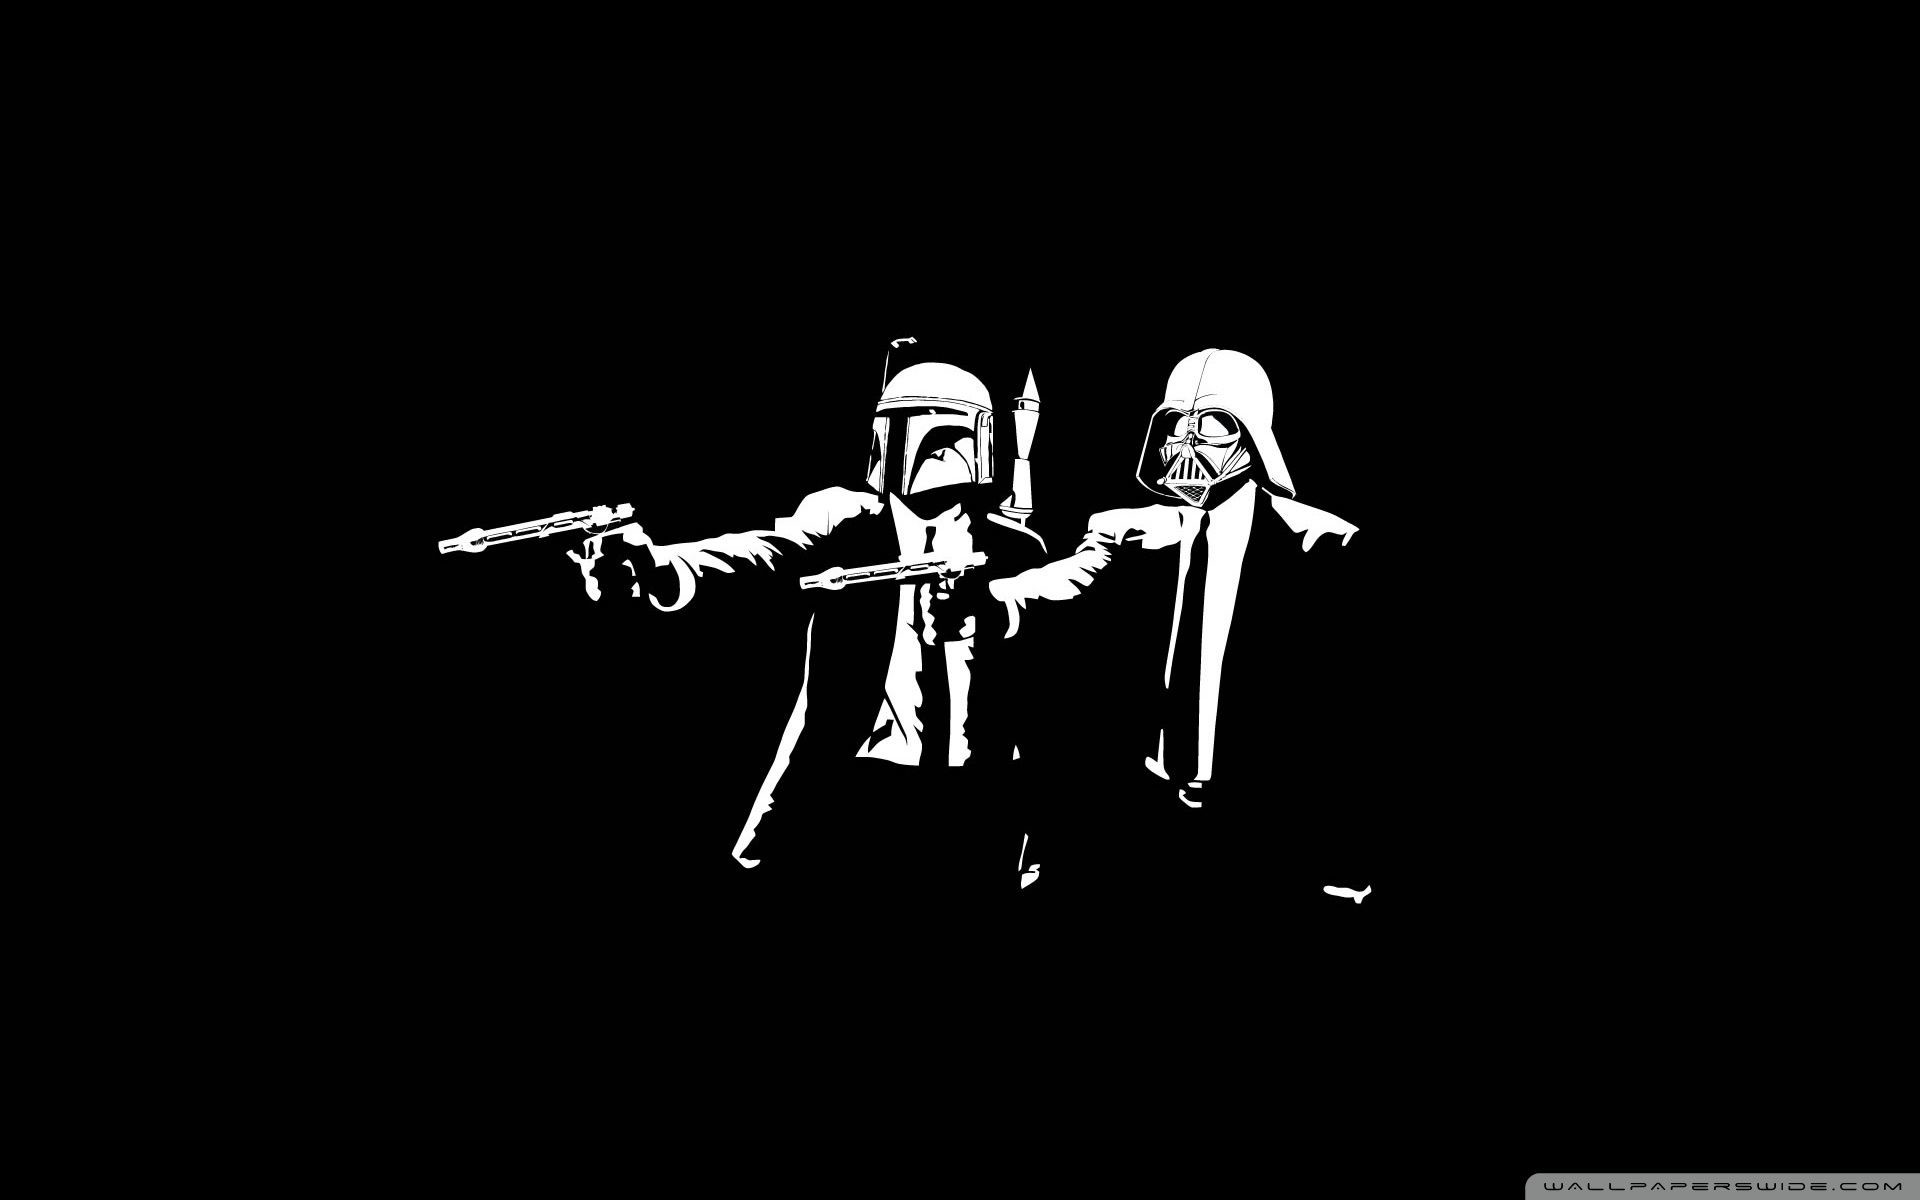 Res: 1920x1200, Movies Wallpaper Star Wars Wallpaper Stormtrooper Wallpapers